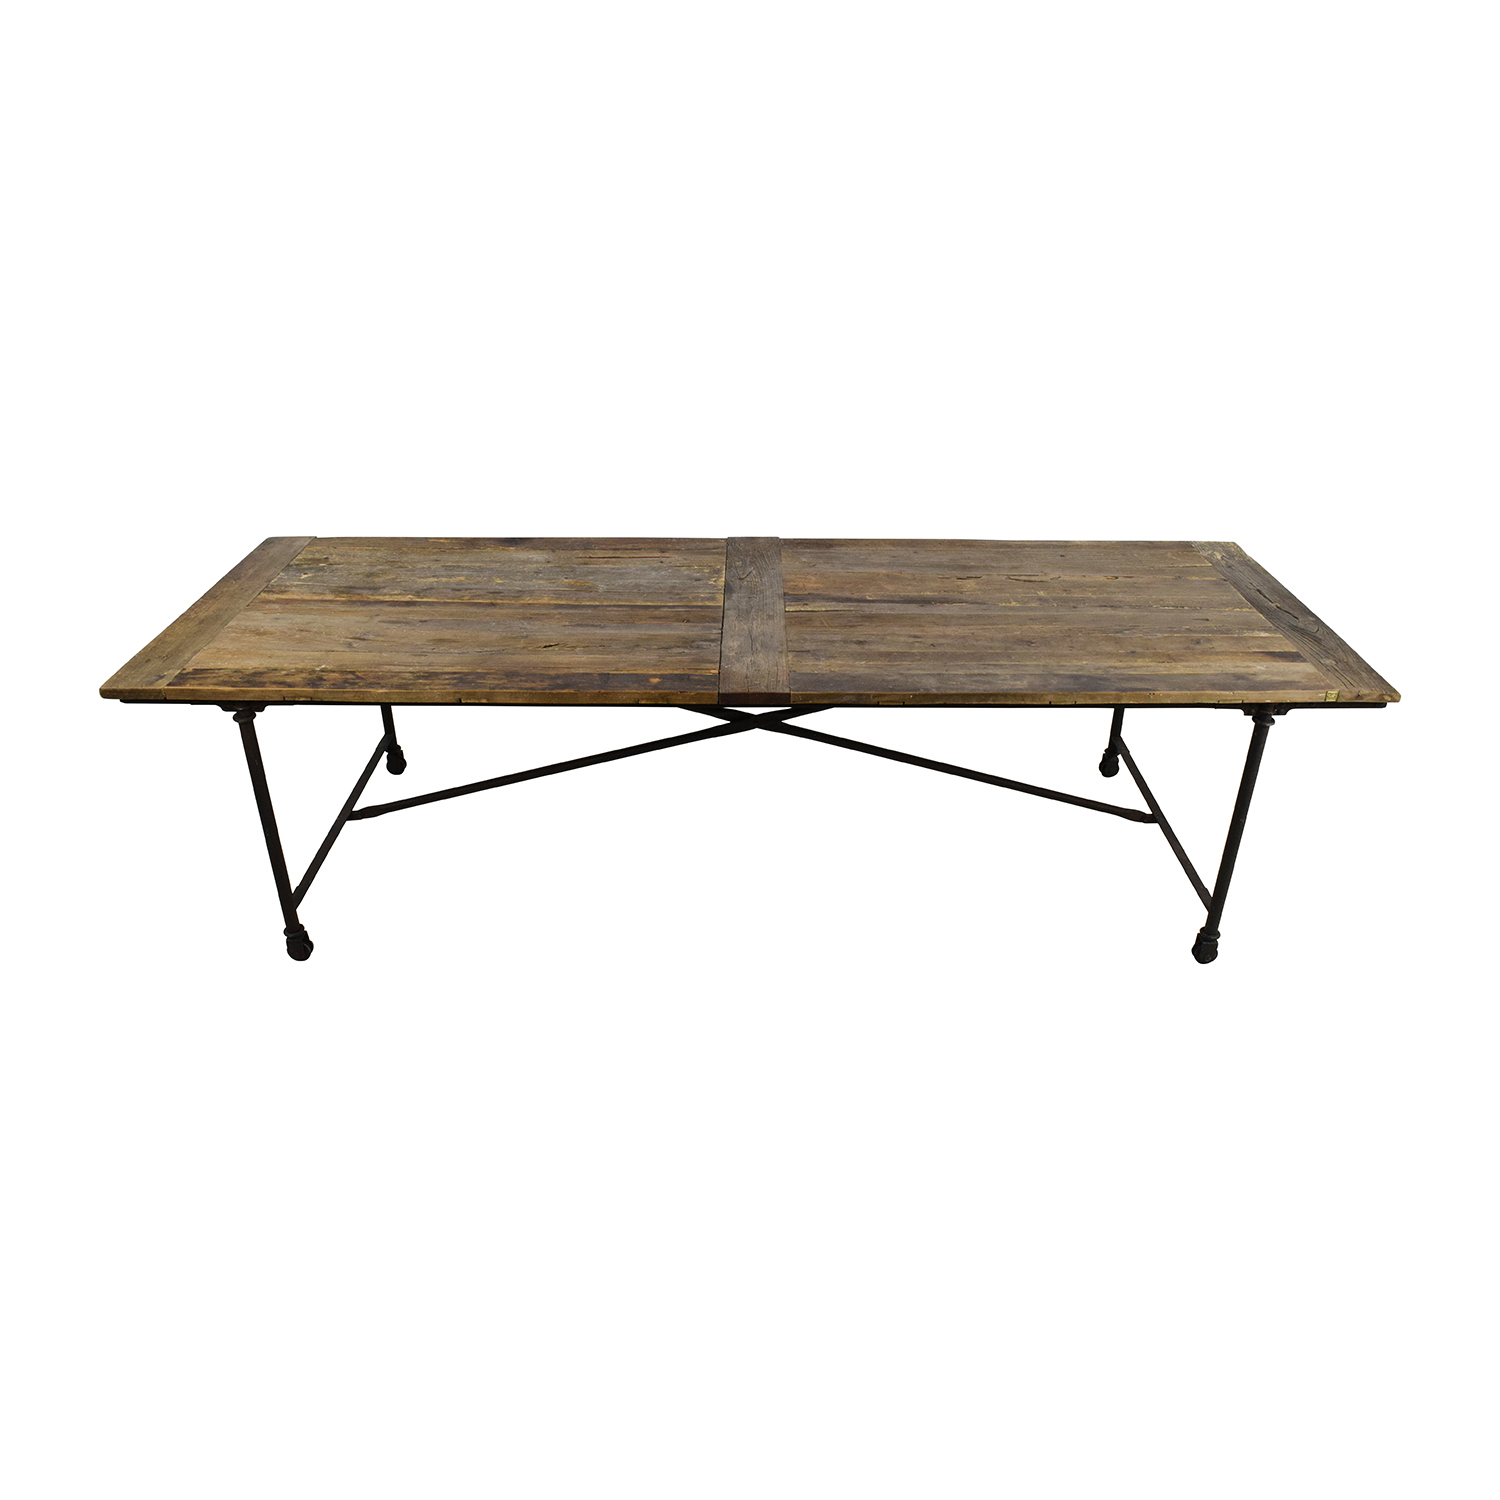 Restoration Hardware Flat Iron Rectangular Dining Table / Tables Part 25